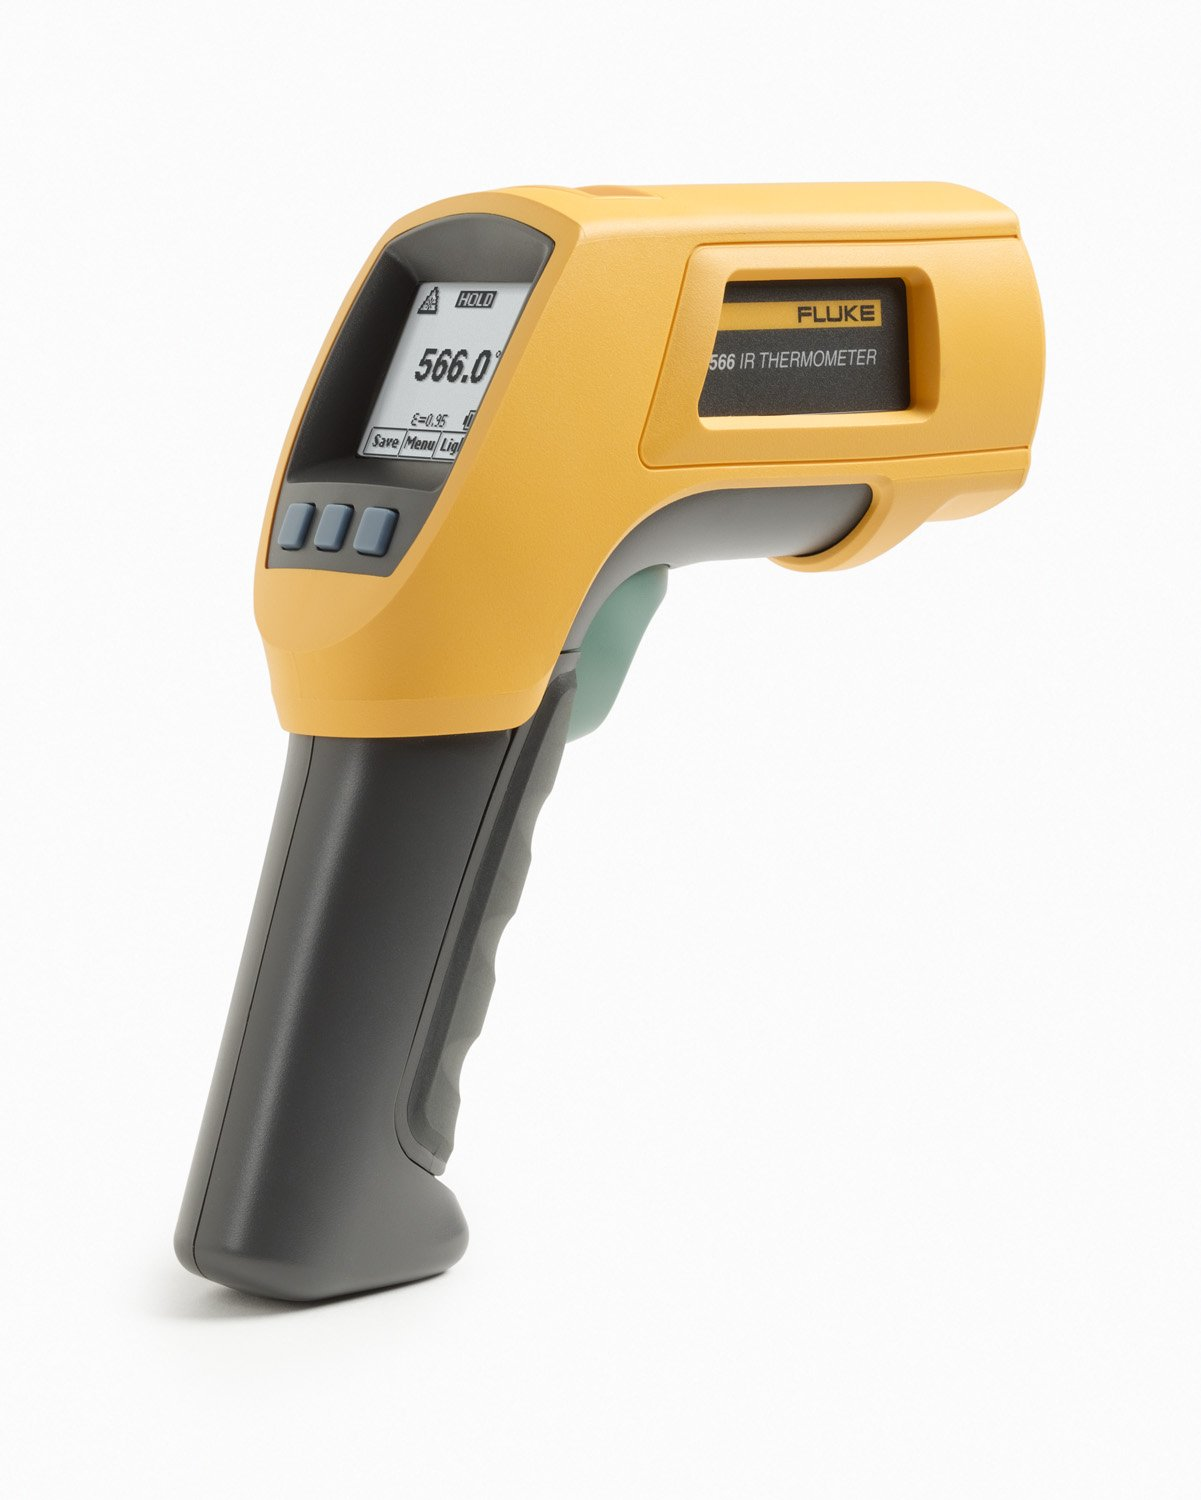 Fluke 566  Dual Infrared Thermometer, -40 to +1202 Degree F Range, Contact/Non Contact by Fluke (Image #1)